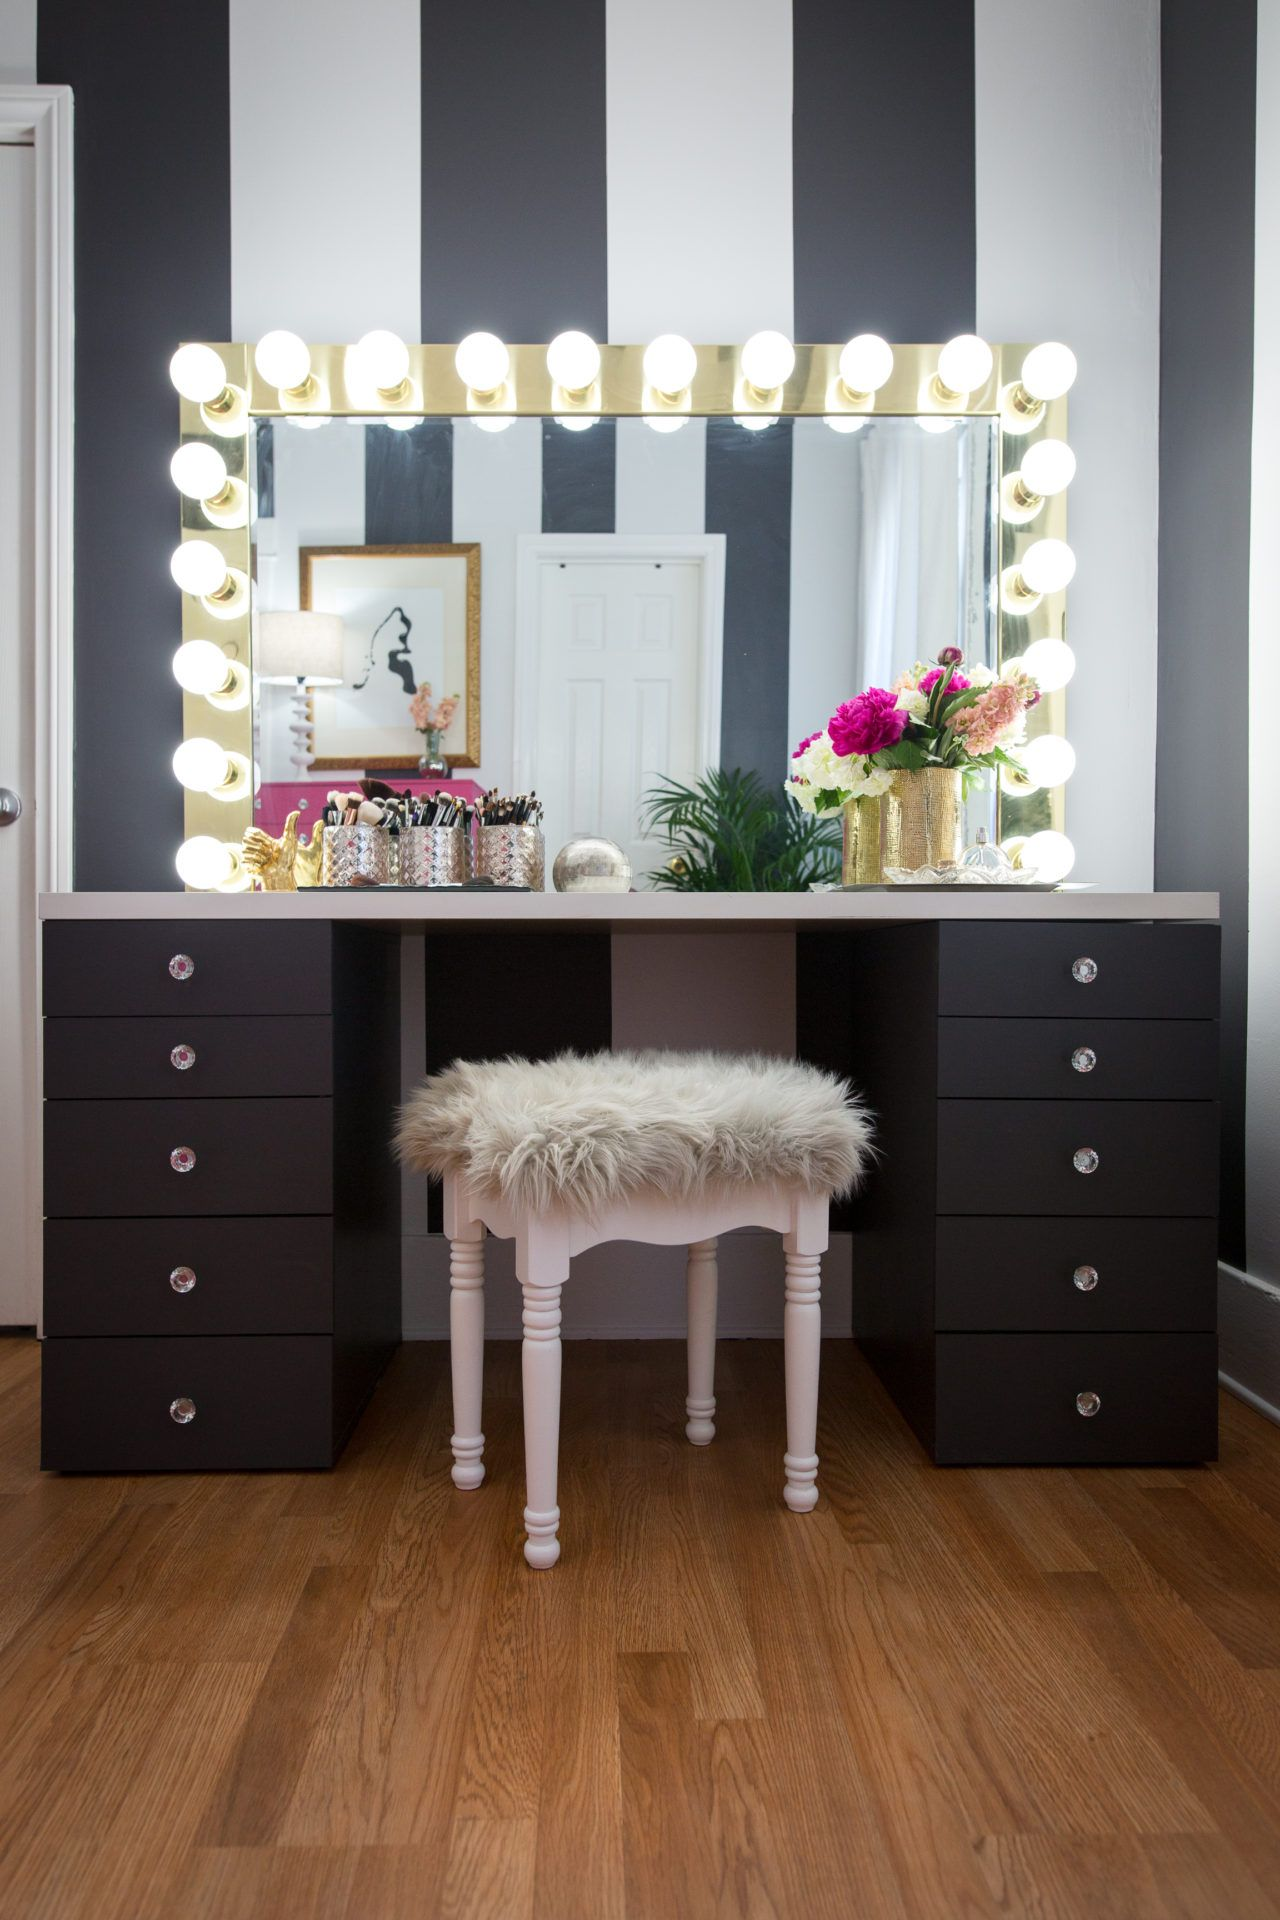 Upcycled alex drawers ikea hack in bedroom pinterest diy